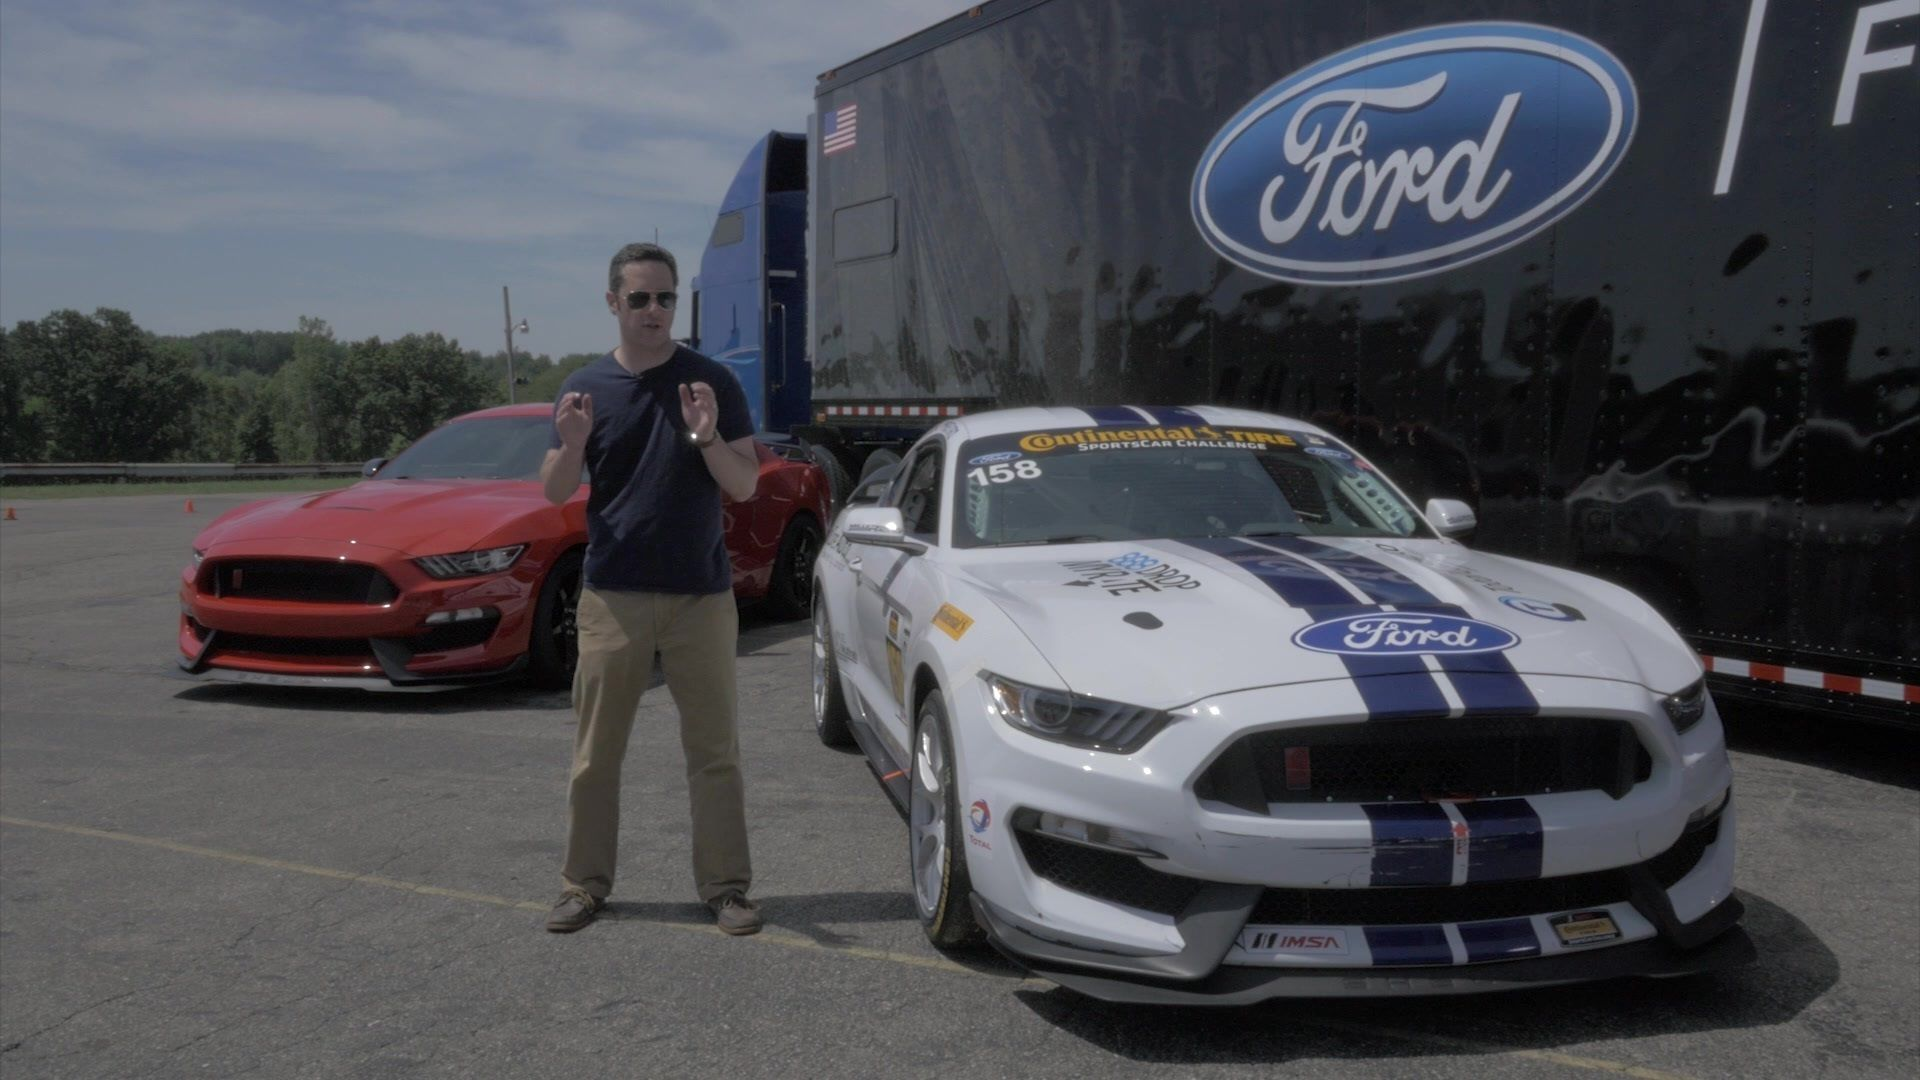 Ford has announced pricing information for the 2016 Shelby GT350 and GT350R Mustang. Take a look at what makes this Shelby special.